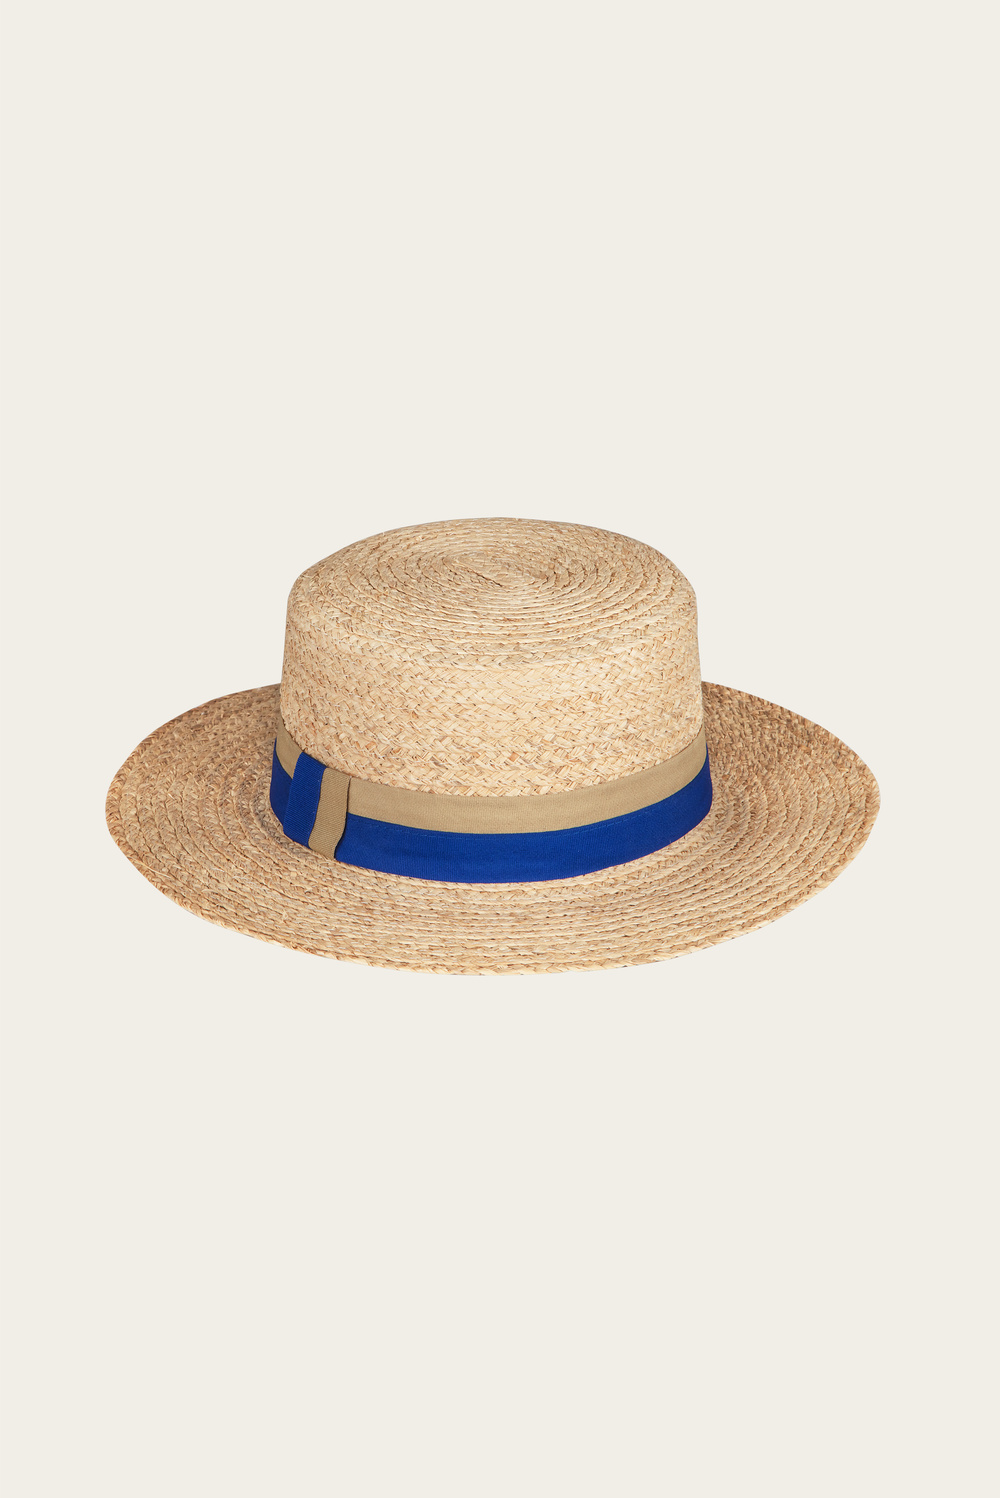 North Beach straw boater